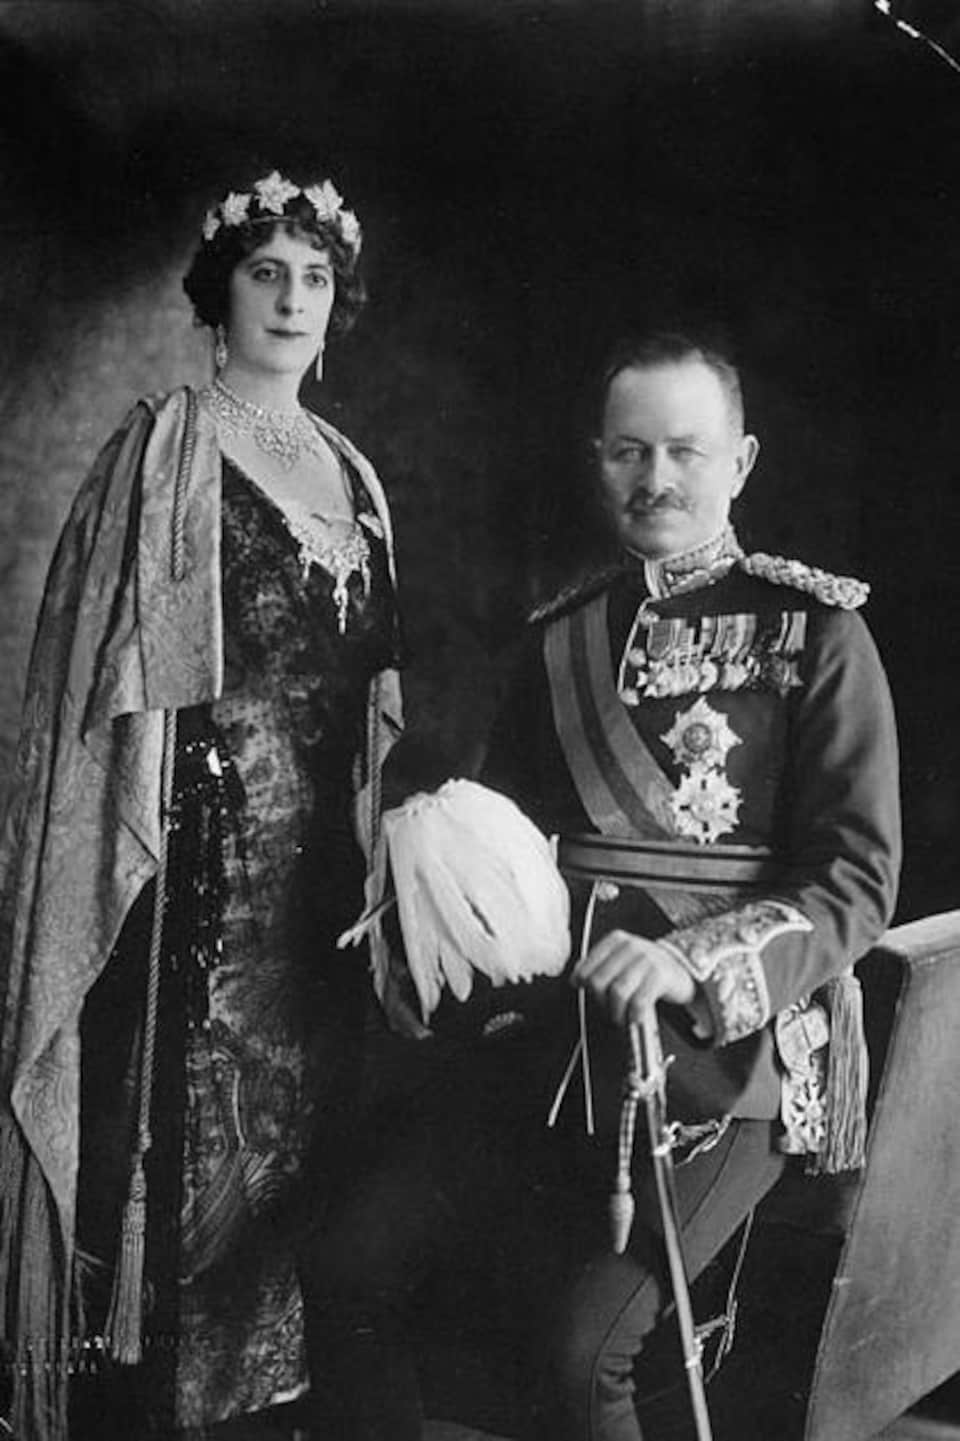 Julian Byng et Lady Evelyn Byng en 1922